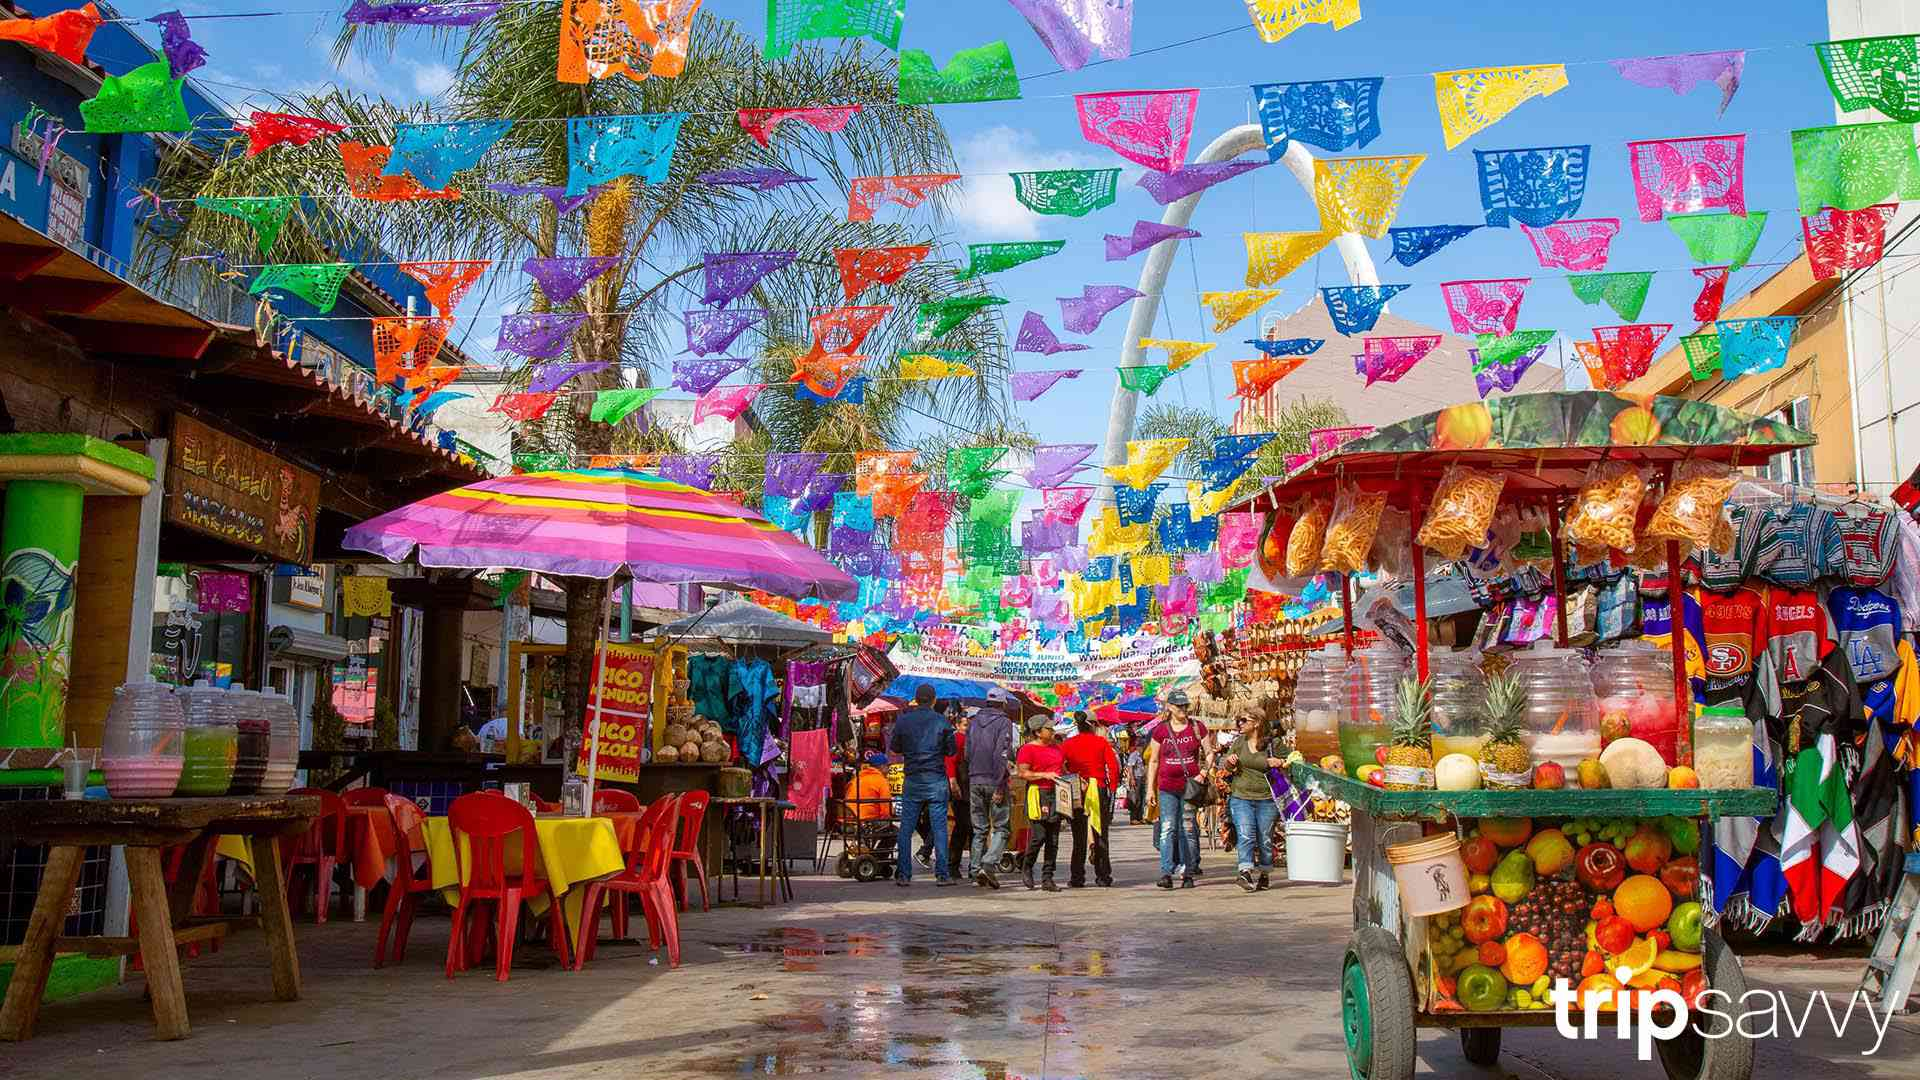 The main plaza in Tijuana with colorful flags overhead